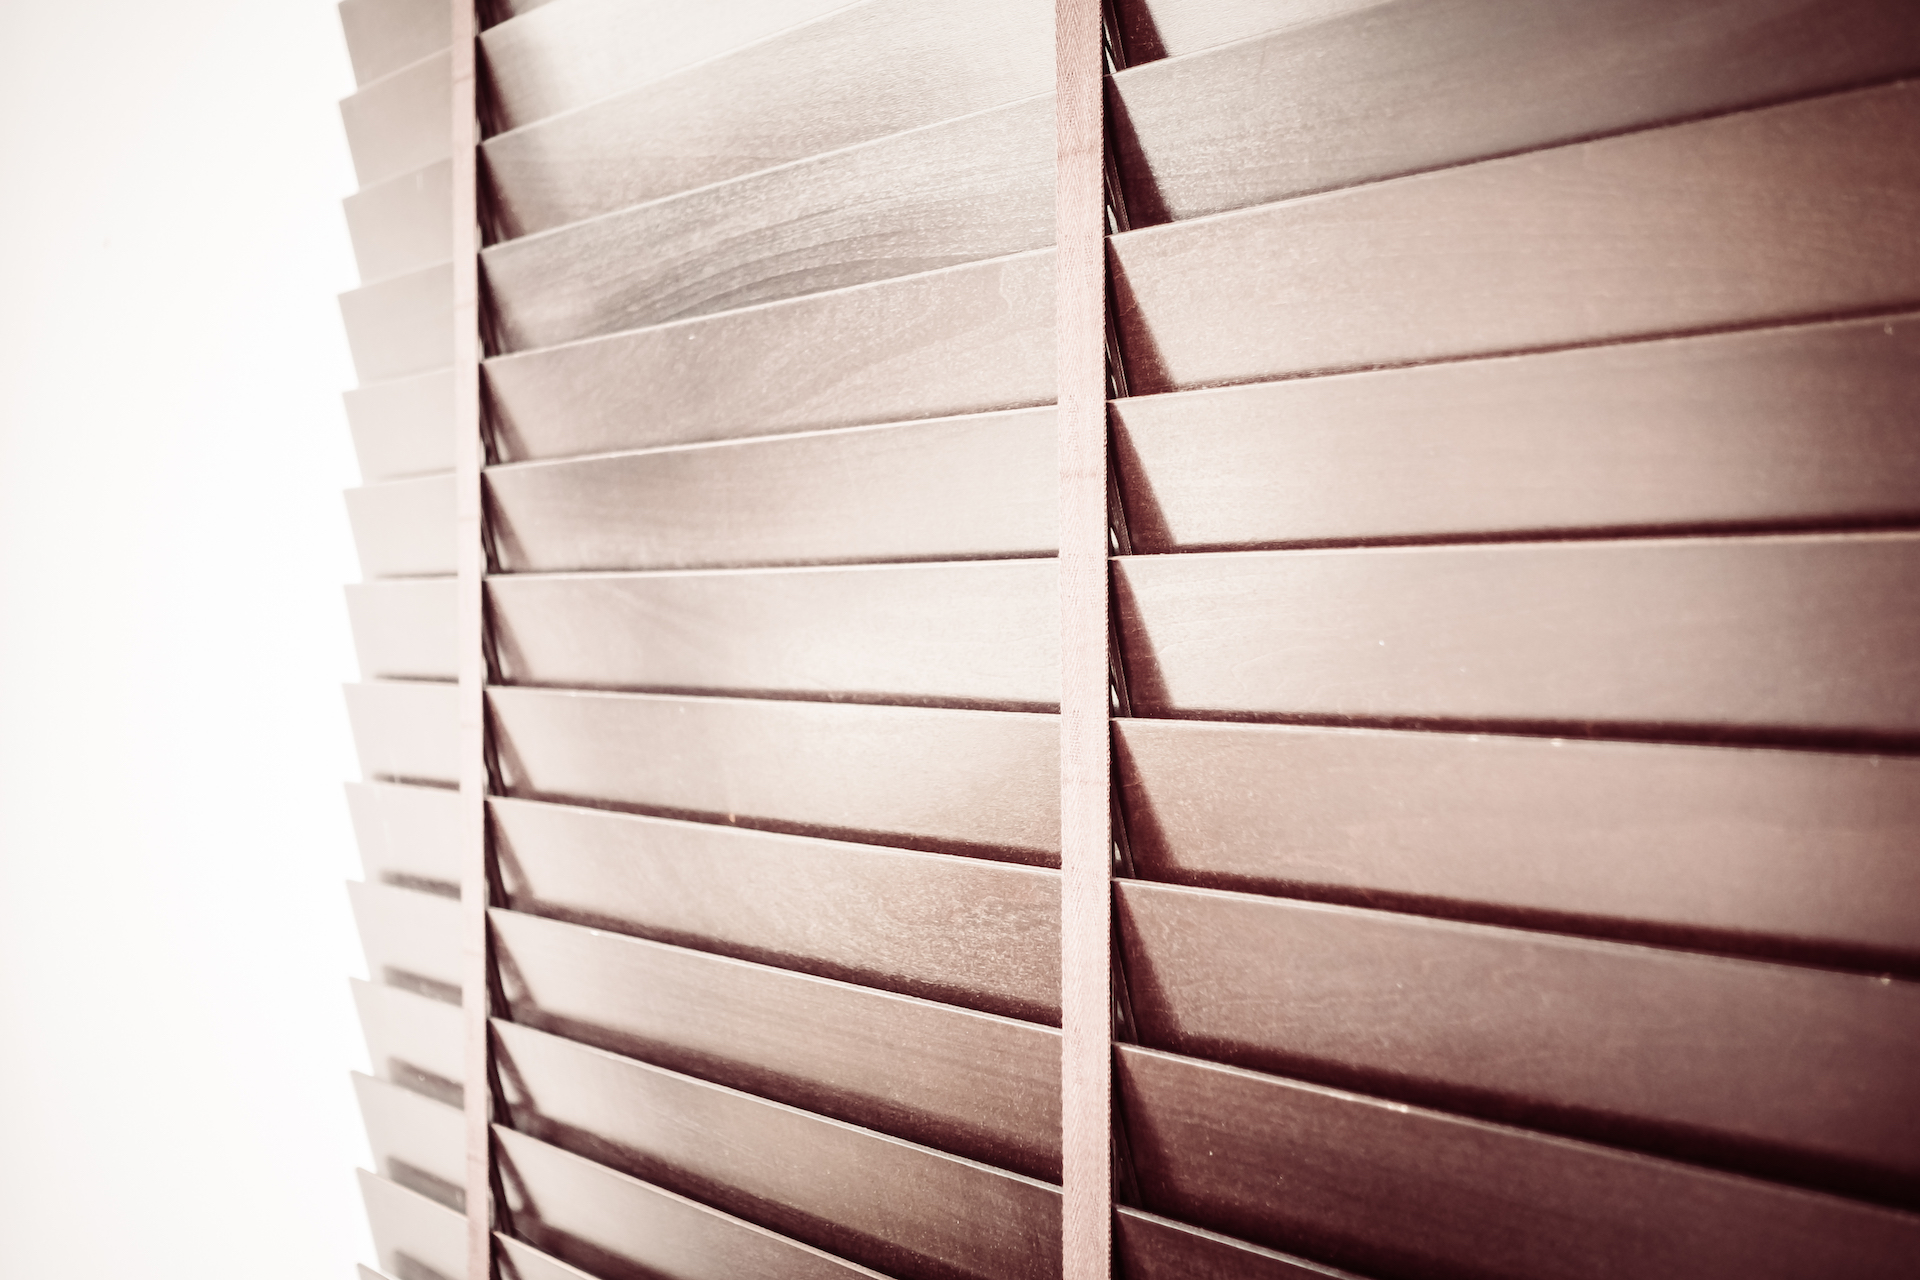 How to care for your wooden blinds during lockdown?